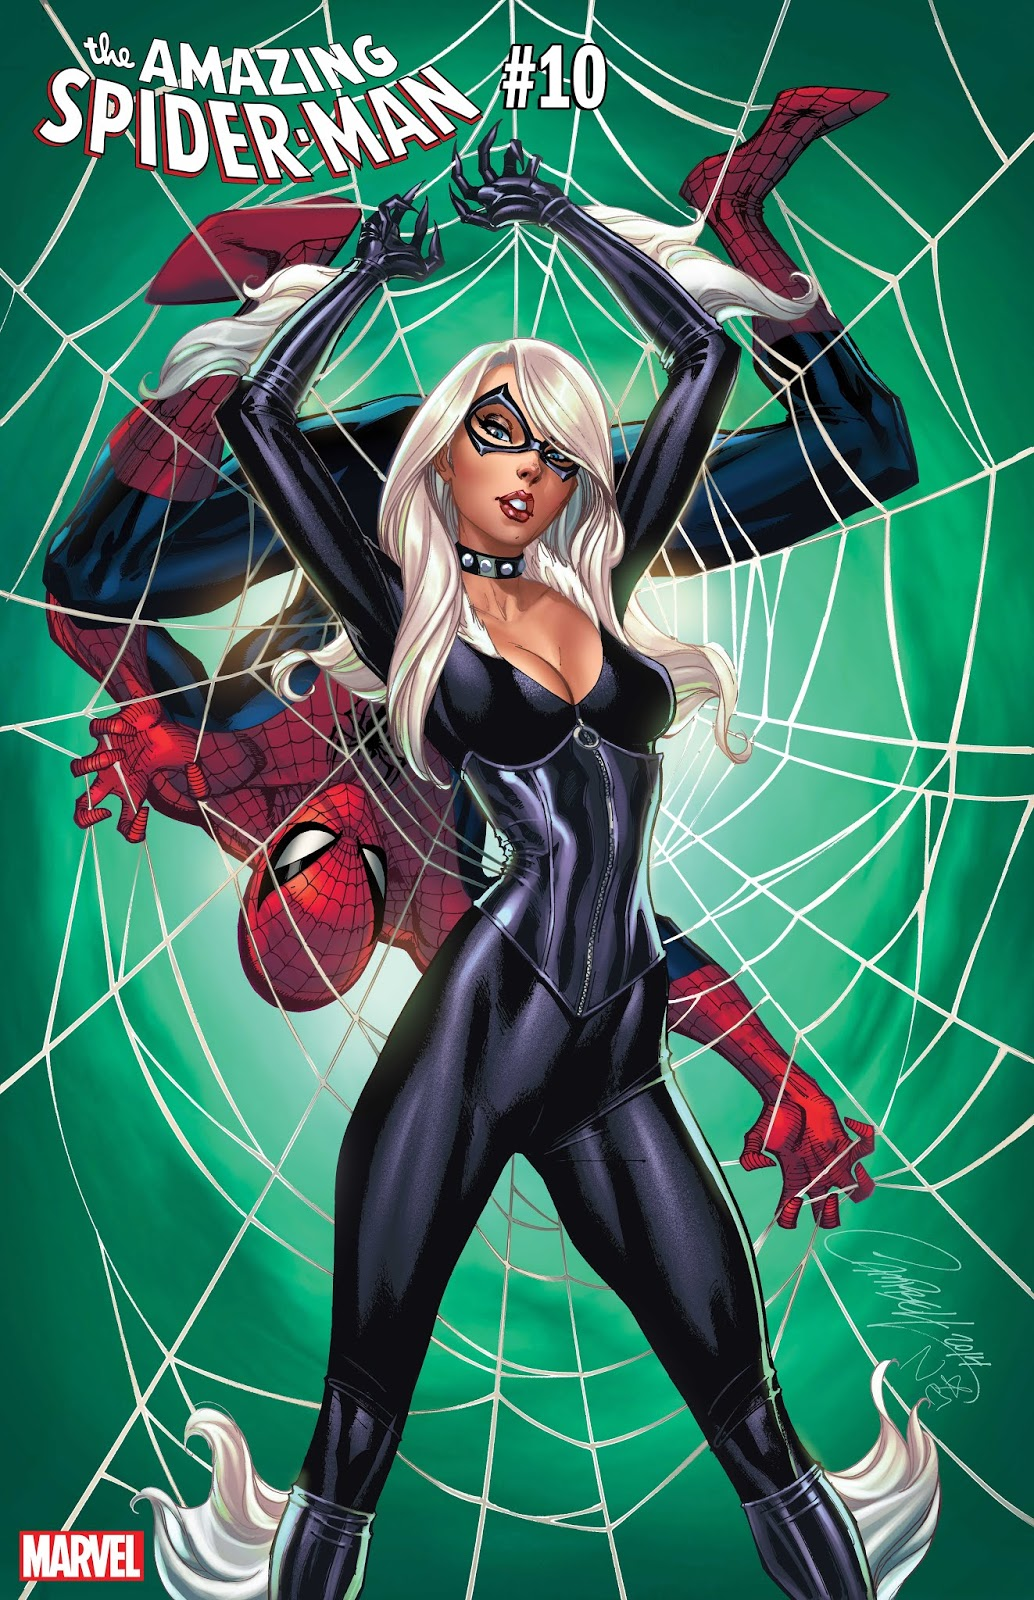 Black Cat Variant Cover by J. SCOTT CAMPBELL